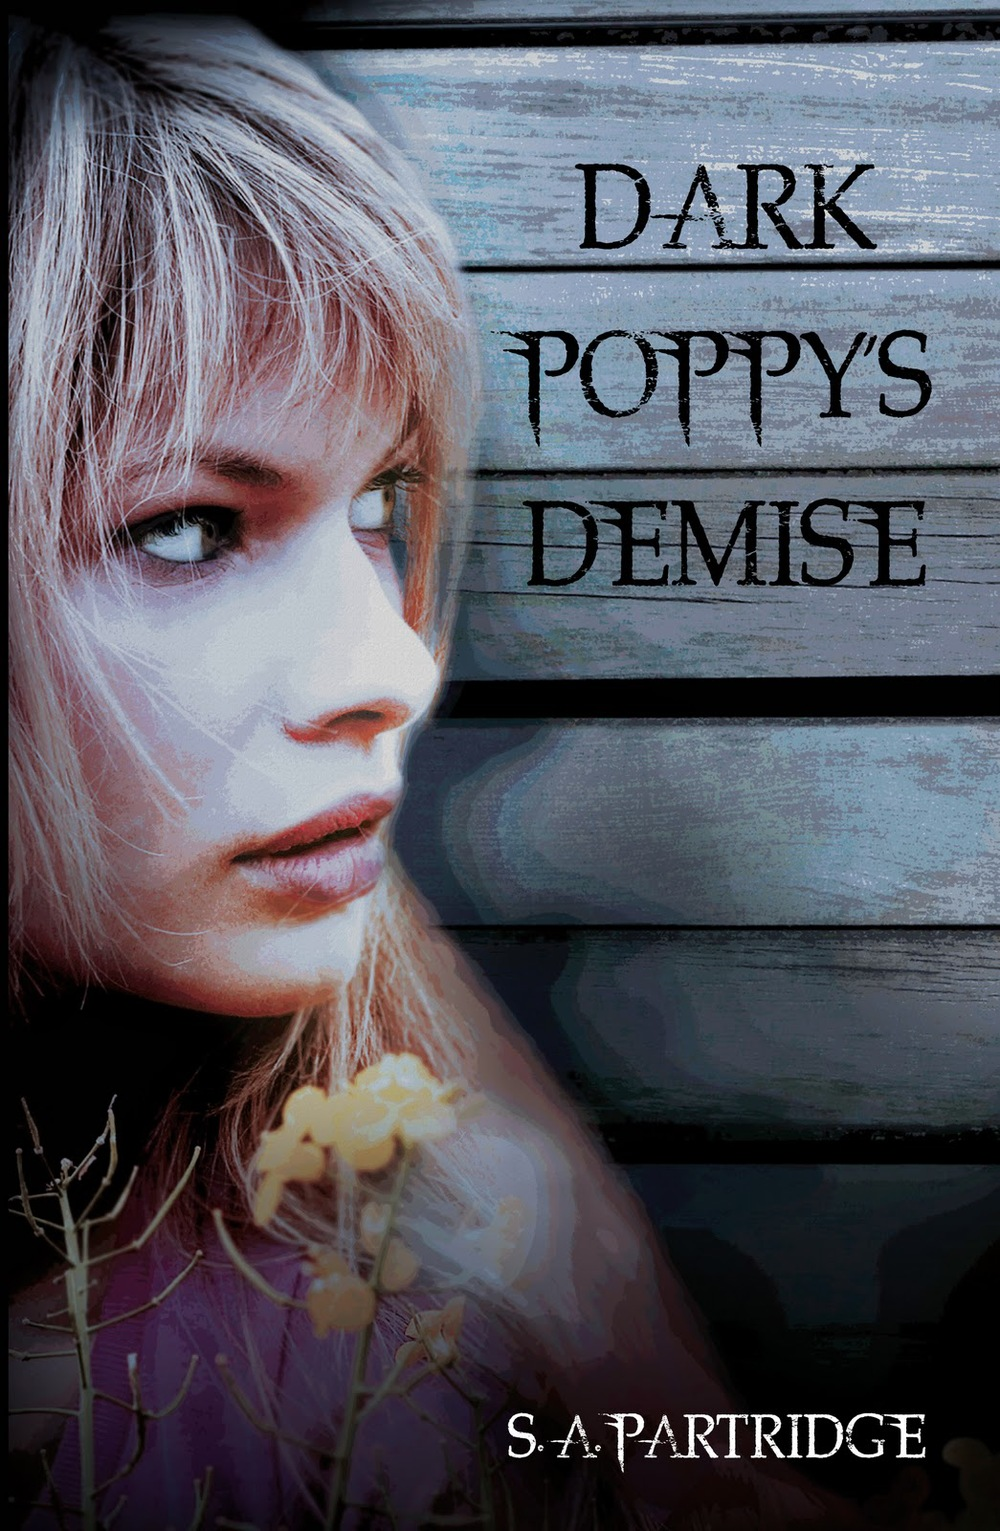 DARK POPPY'S DEMISE  Young Adult novel, 192 pages Human & Rousseau (SA), 15 July 2011  Jenna feels as though she lives her real life online, when she is enigmatic, creative Dark Poppy. When Robert Rose sends her a friend request, she sees no reason to refuse...